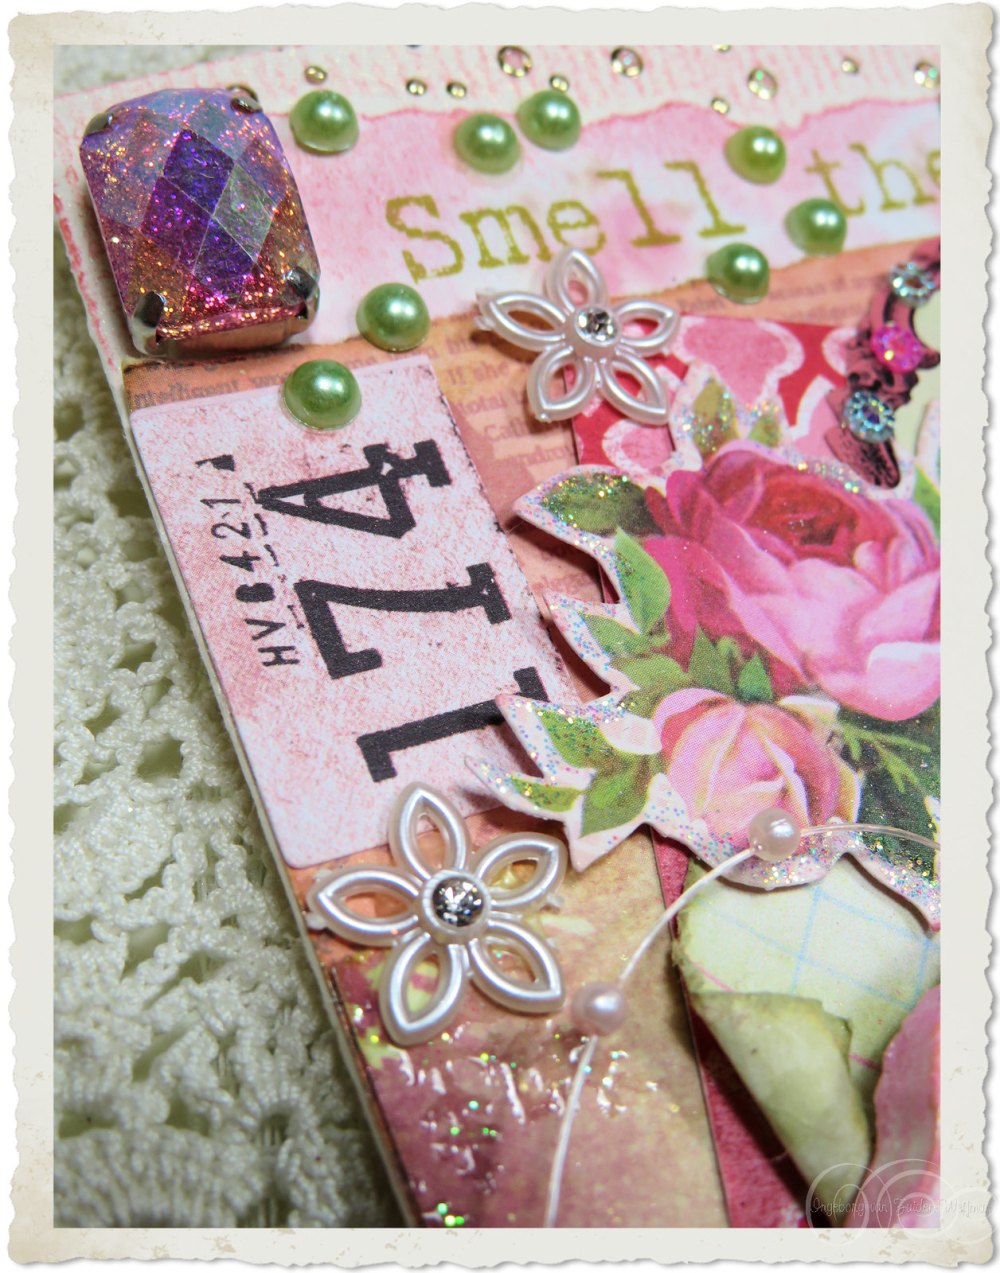 Stones and other embellishments on handmade card